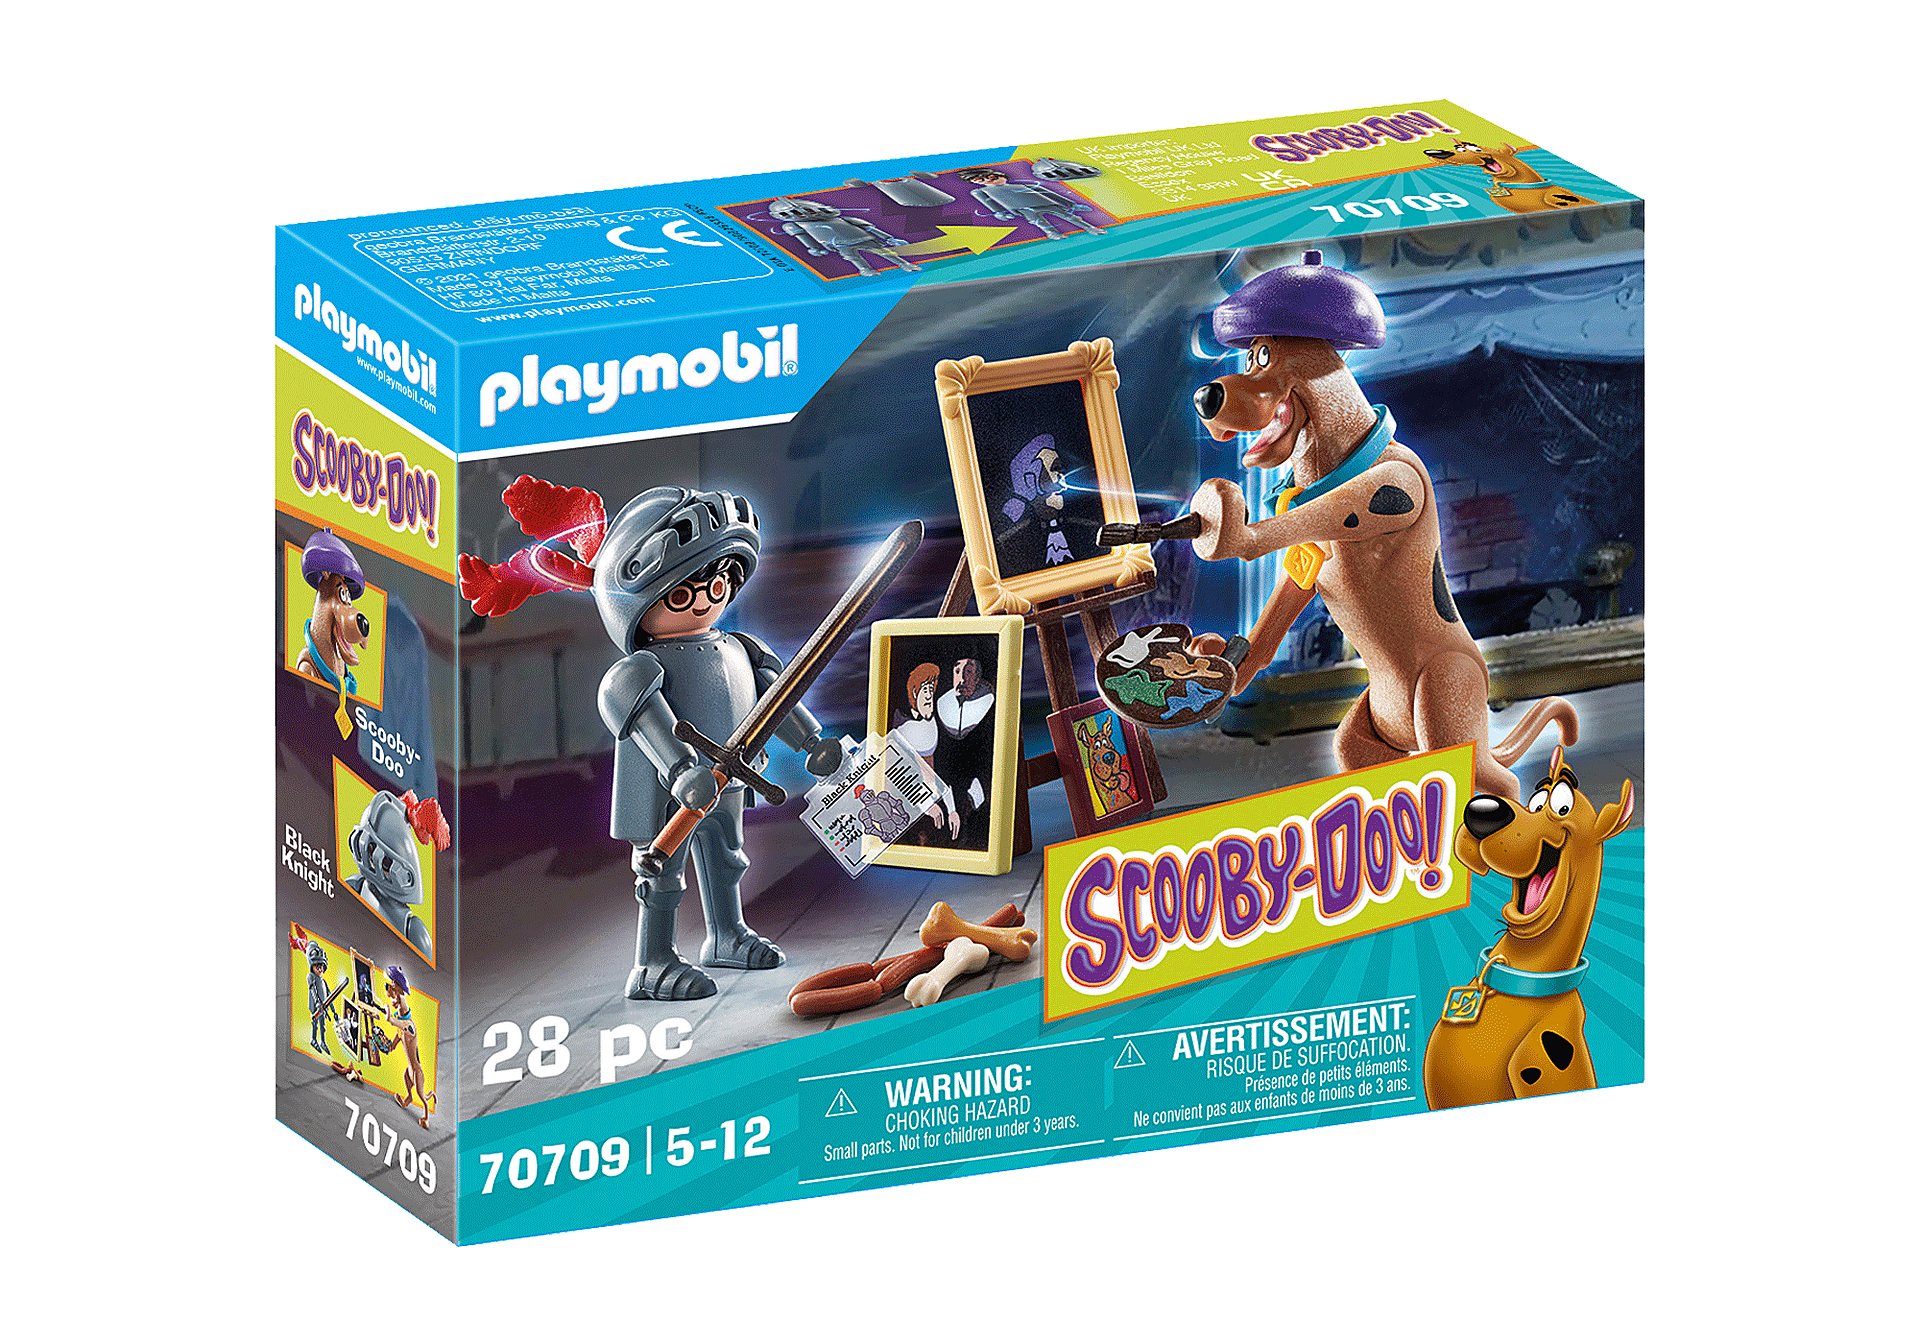 Playmobil - SCOOBY-DOO! Adventure with Black Knight (70709)